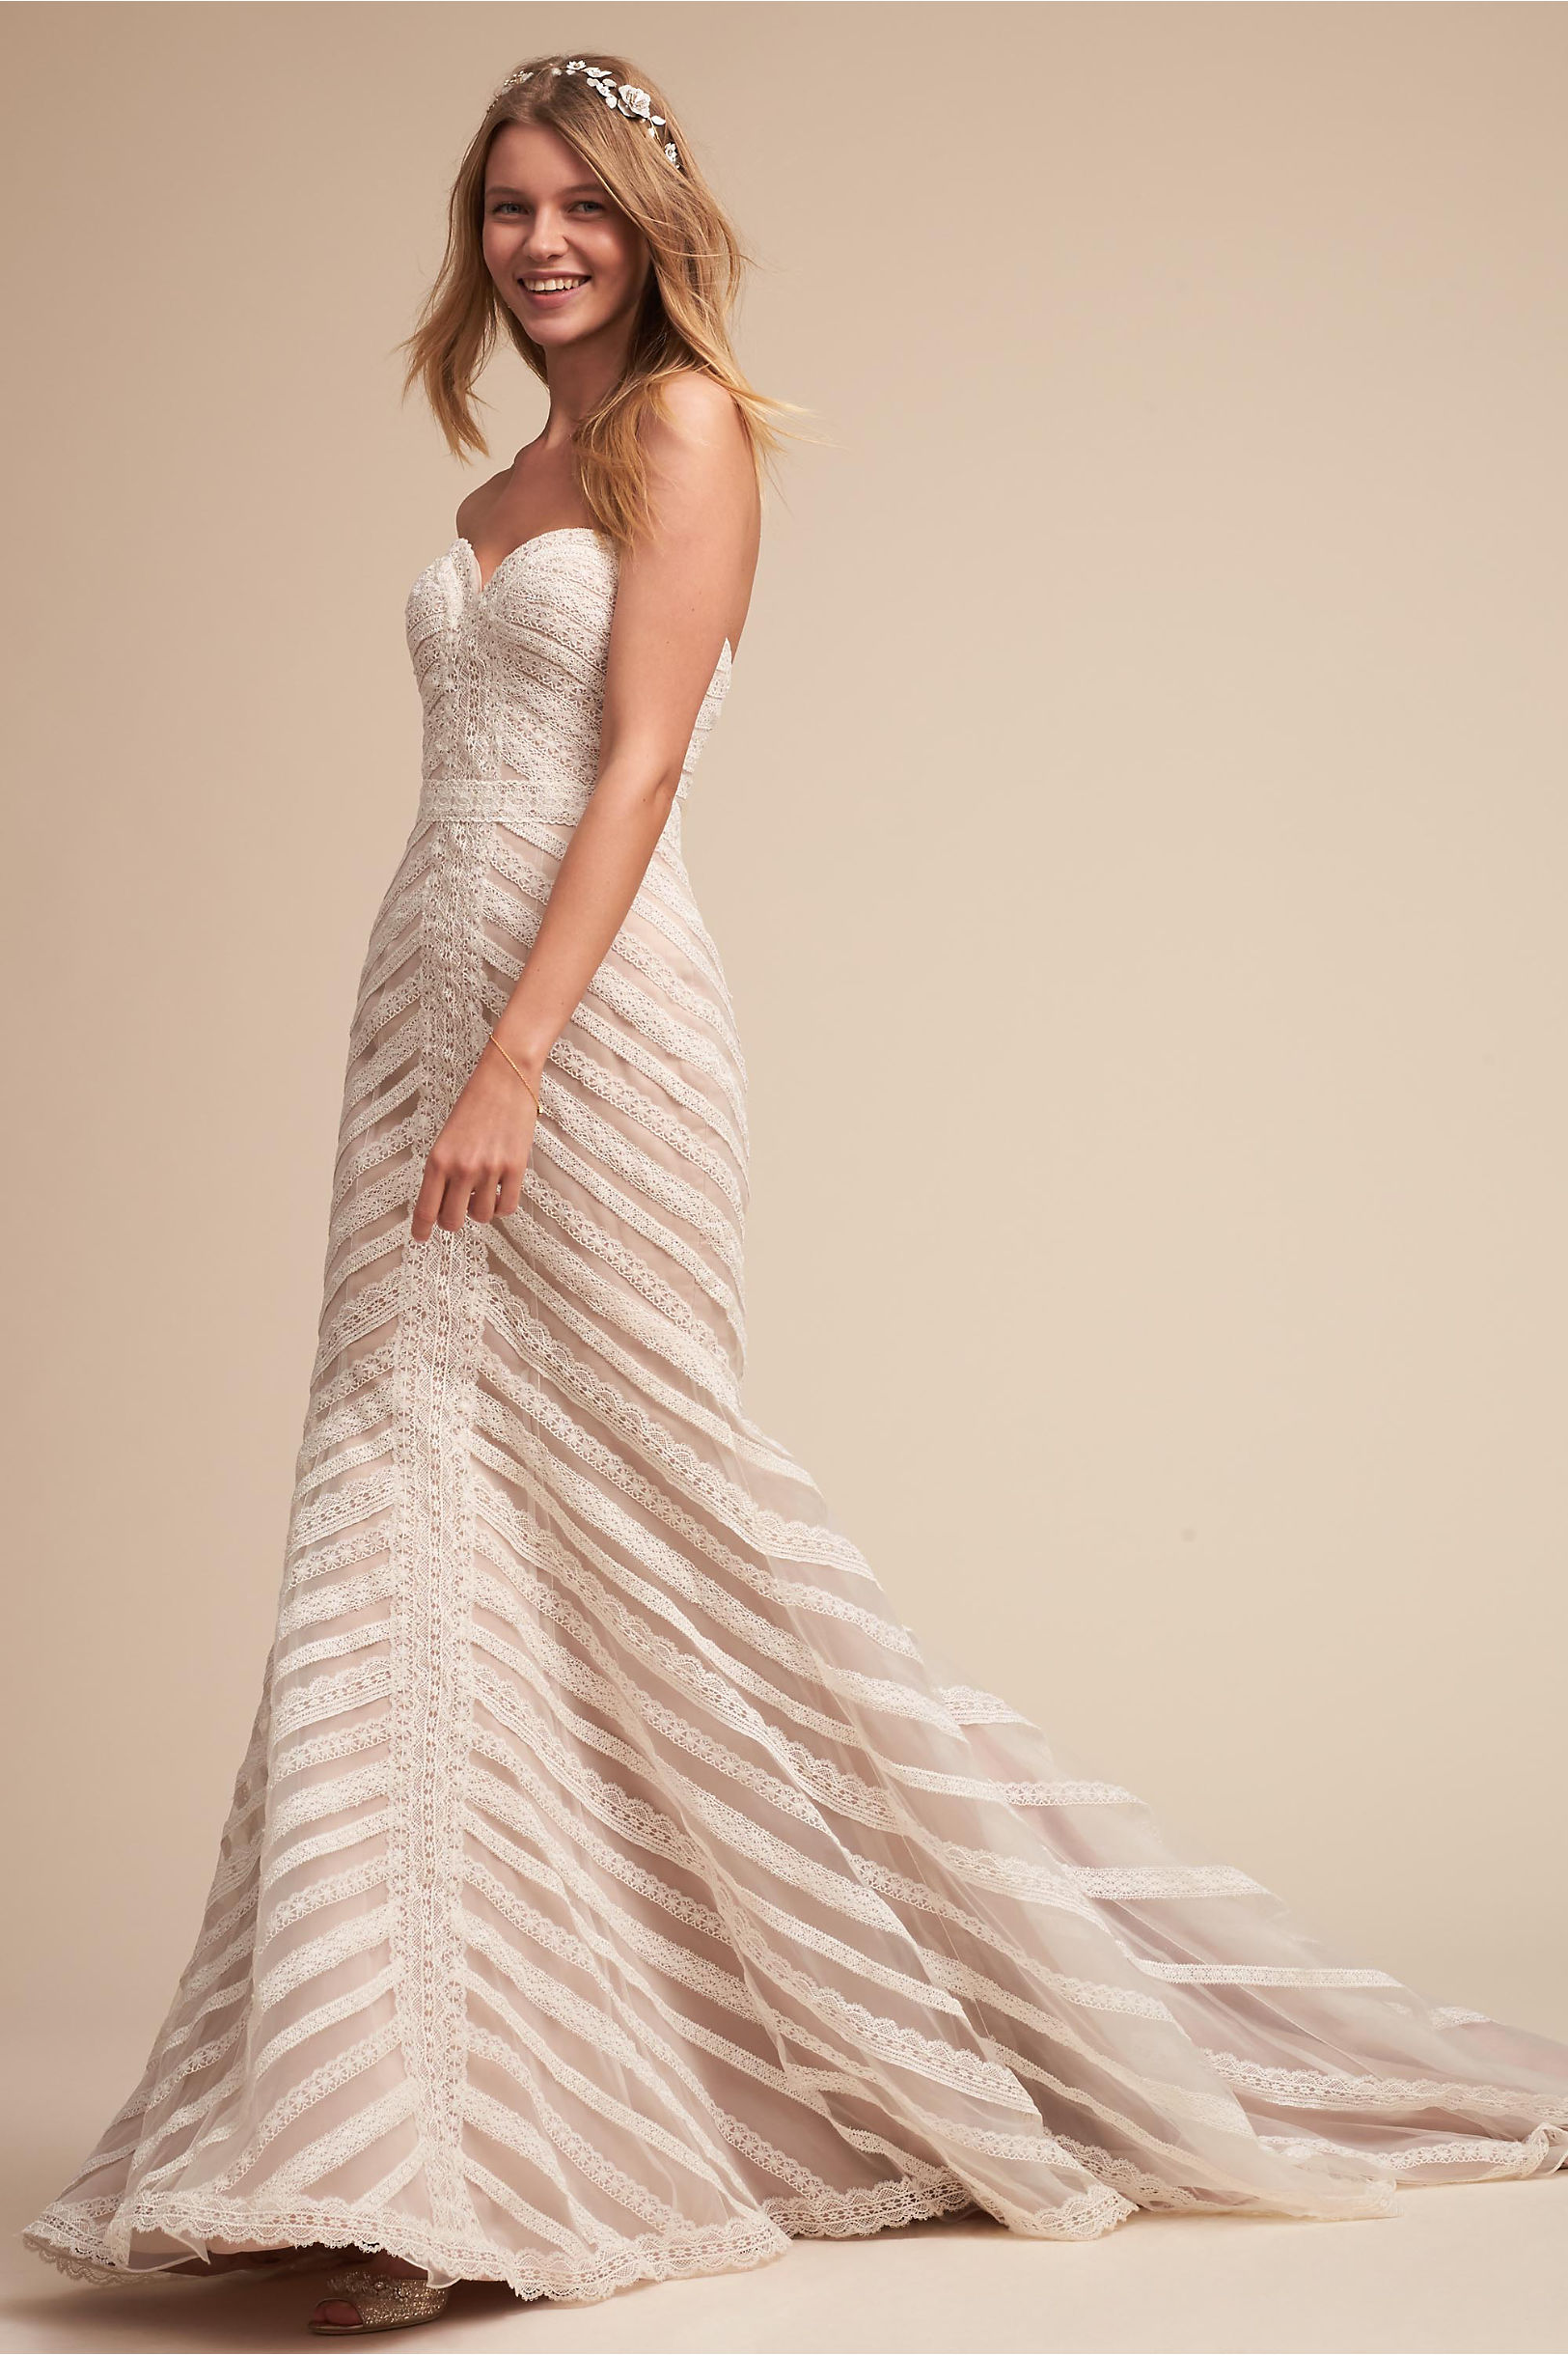 Wedding dresses gowns bhldn waverly gown waverly gown junglespirit Image collections